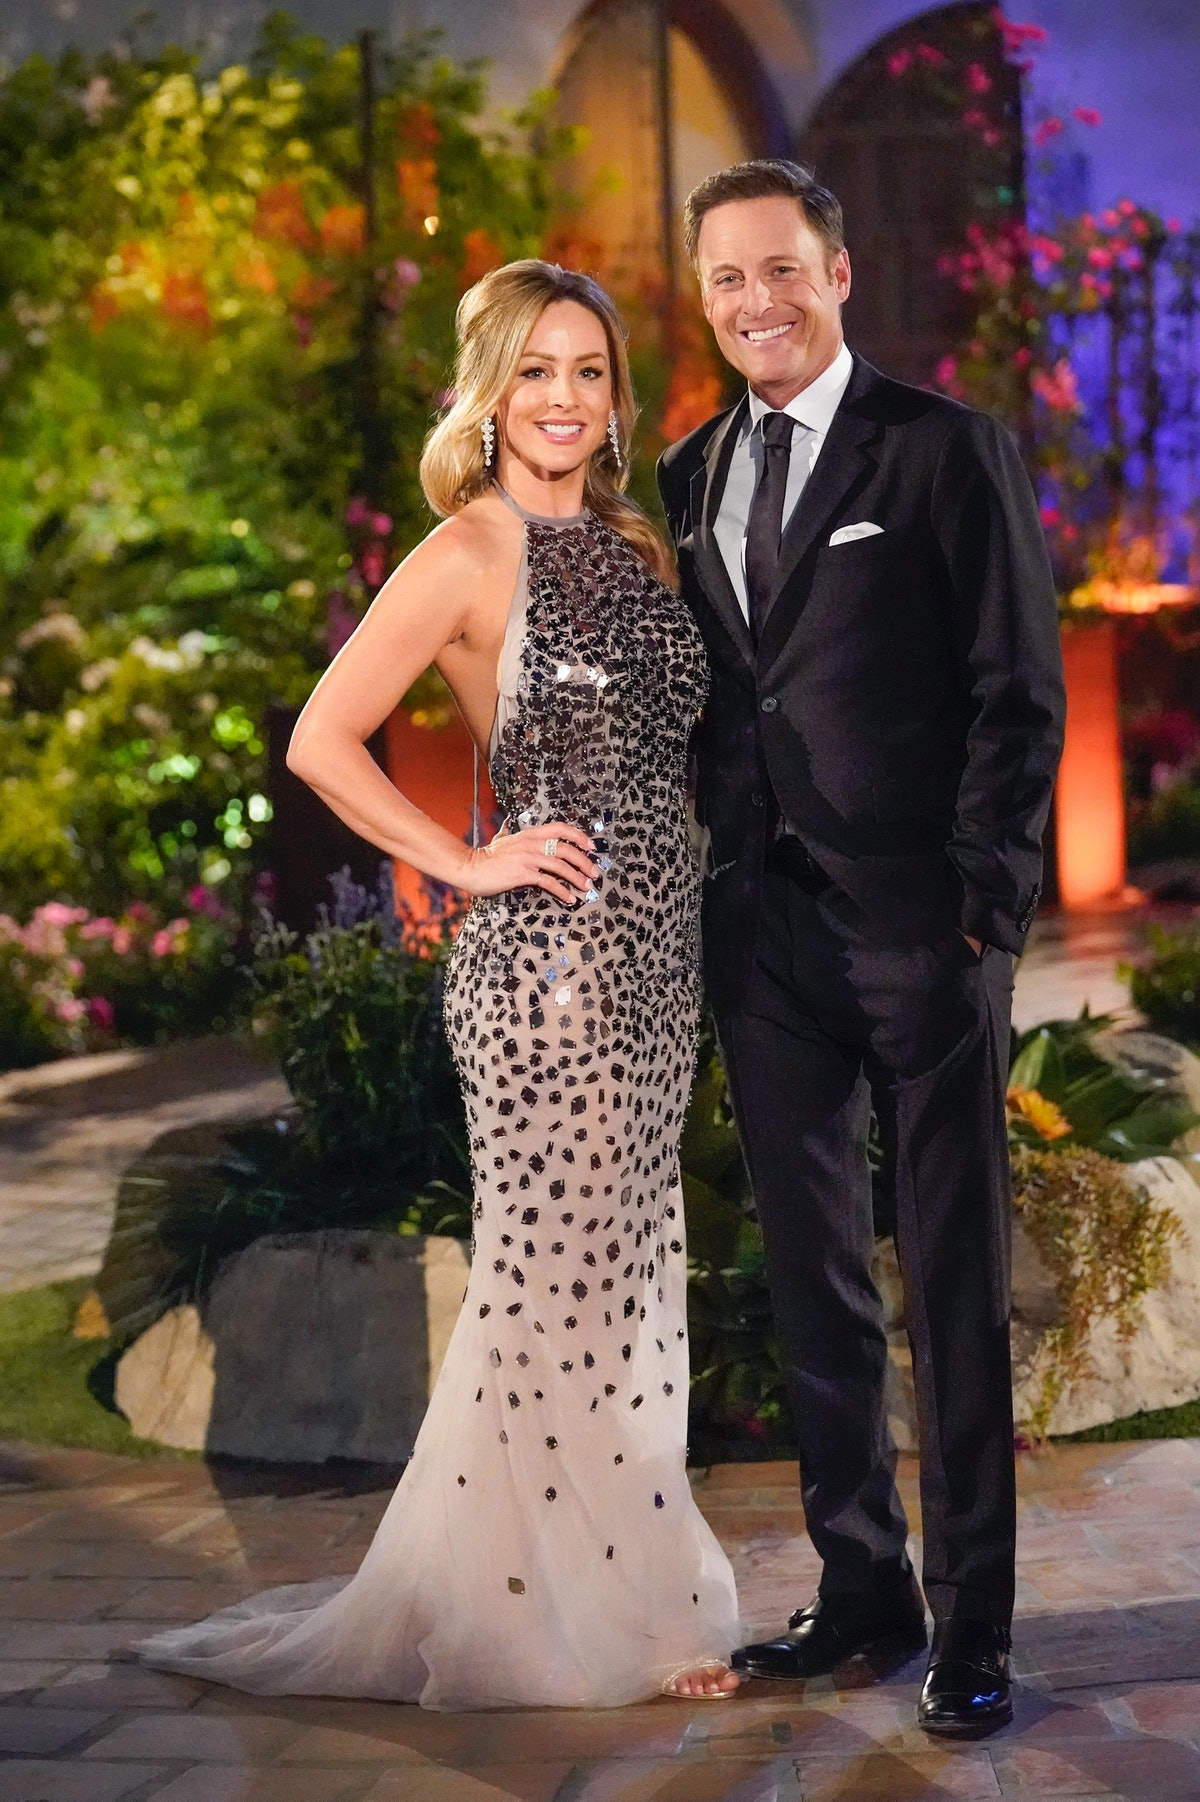 Clare Crawley and Chris Harrison on 'The Bachelorette'